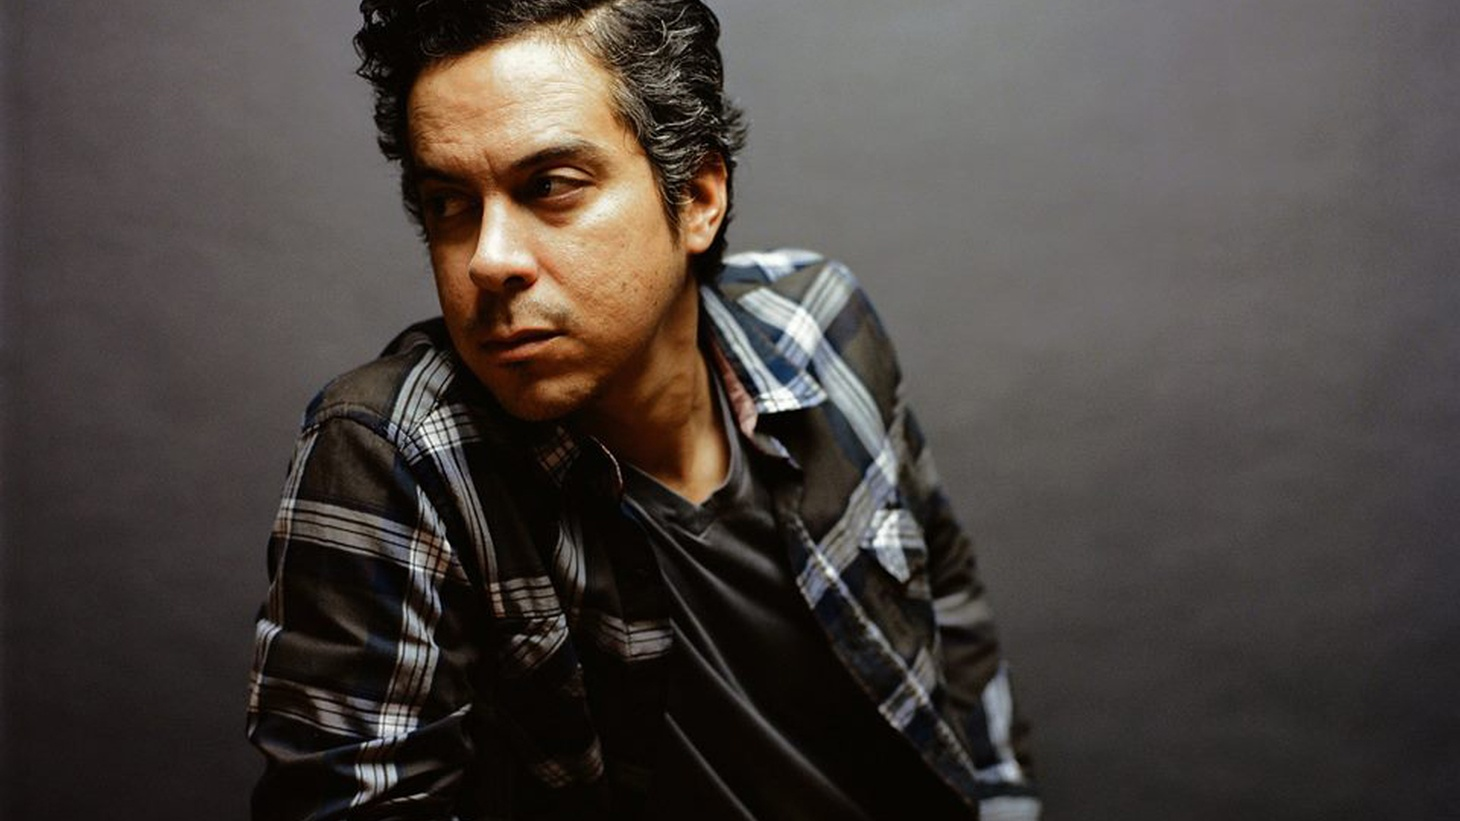 Ventura-born and Portland-based singer/songwriter M Ward's eighth studio album, Rain,drops in early 2016 and it is a nostalgic look back at people and places he used to know.